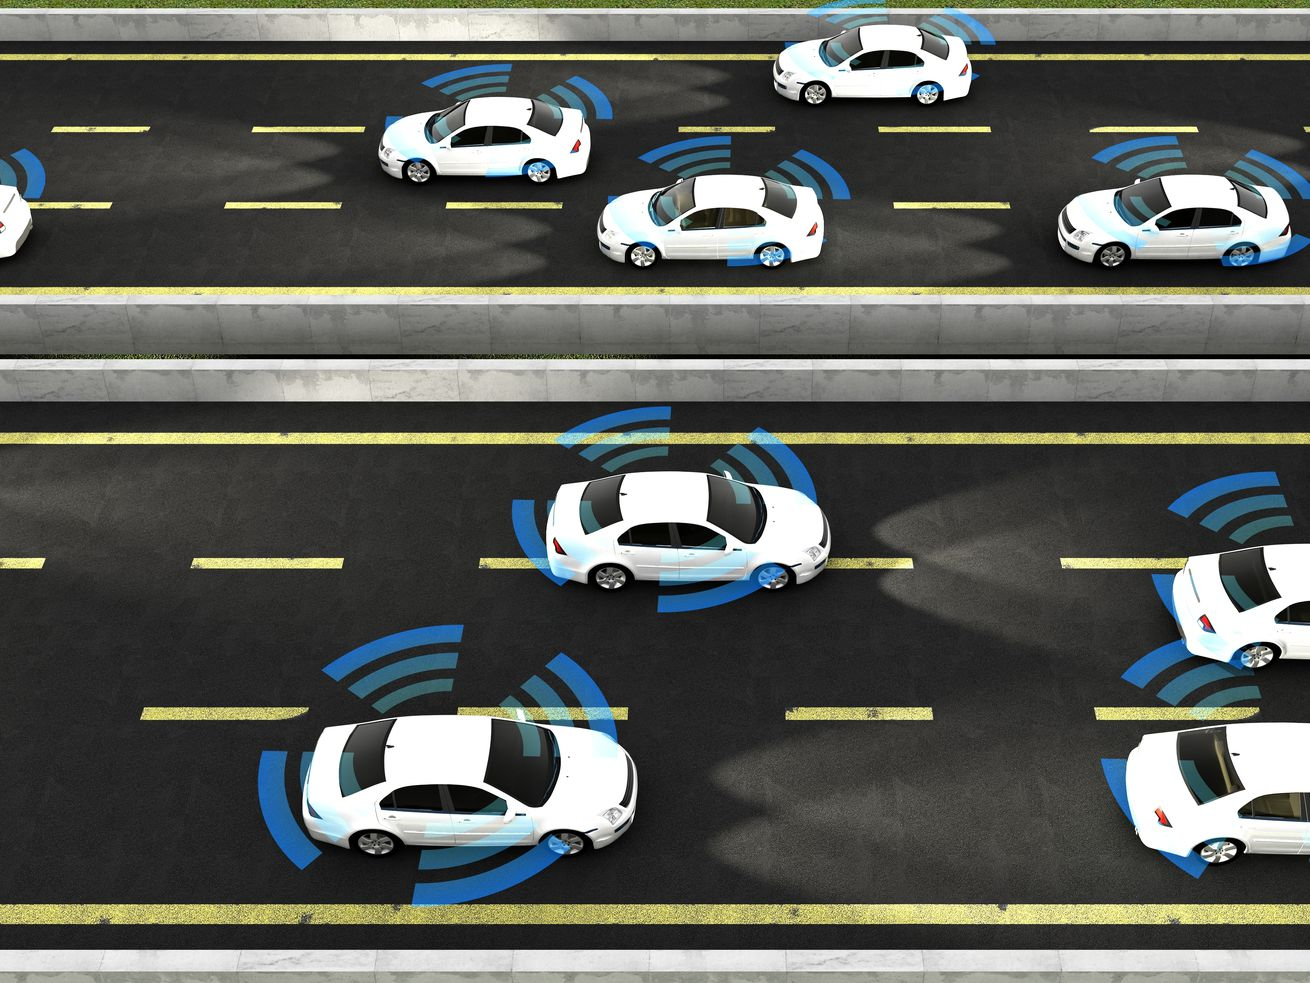 Autonomous vehicles may drive racial inequity on the highway if we're not careful.